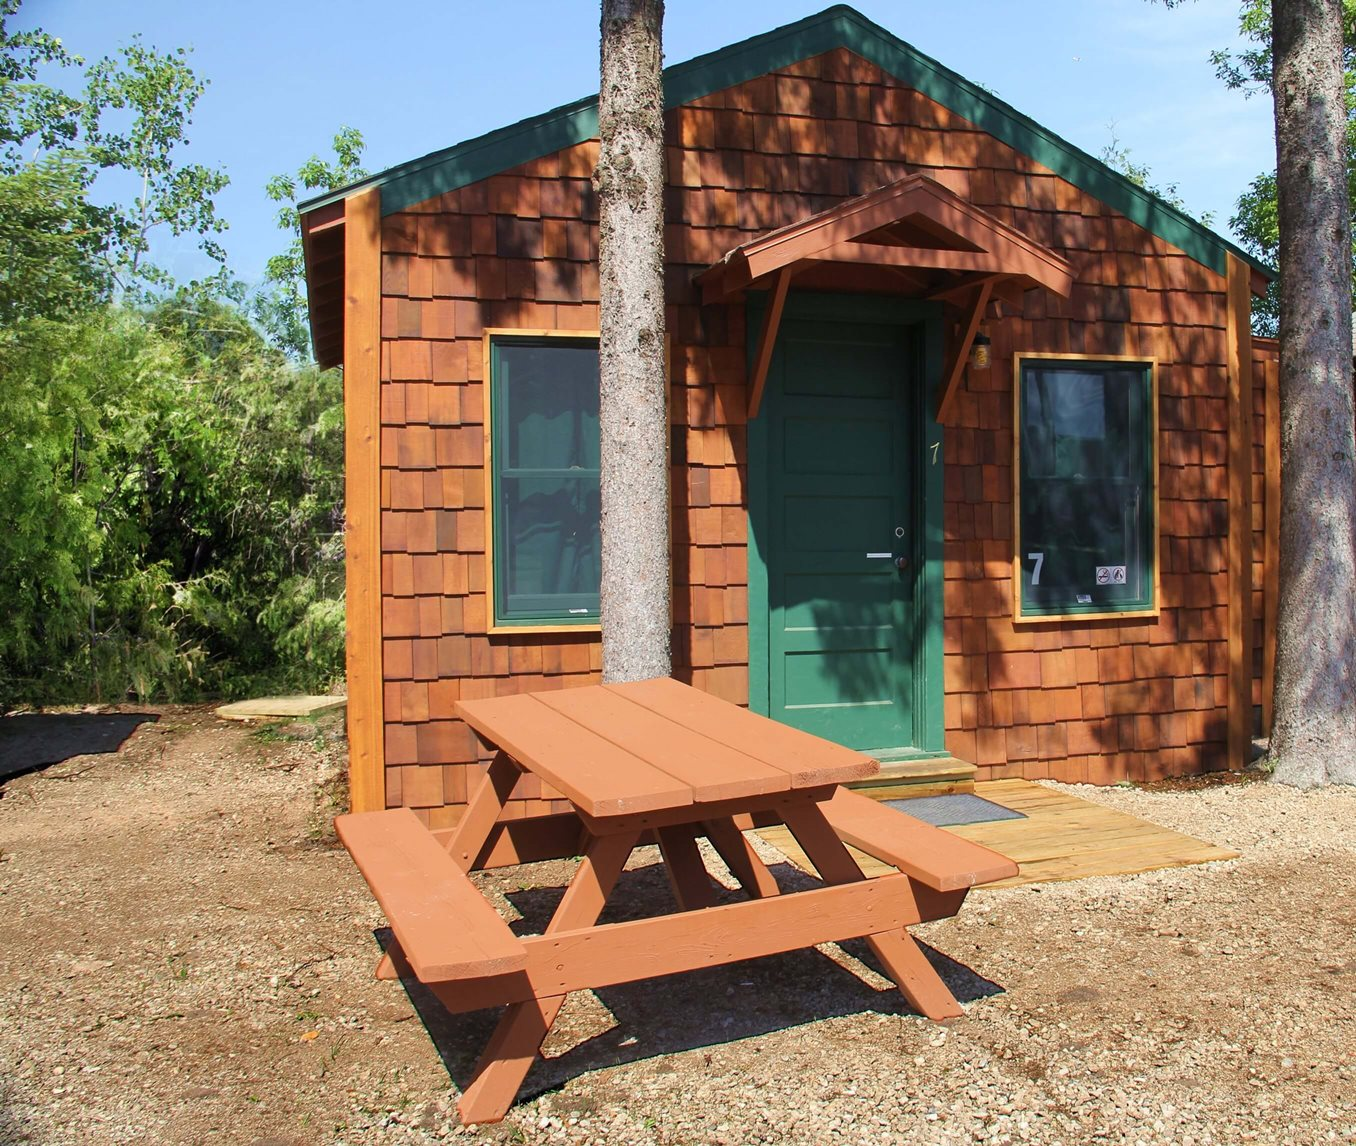 Exterior view of a six person cabin at Mackinac Lakefront Cabin Rentals in Mackinaw City, MI. © 2013 Frank Rogala.